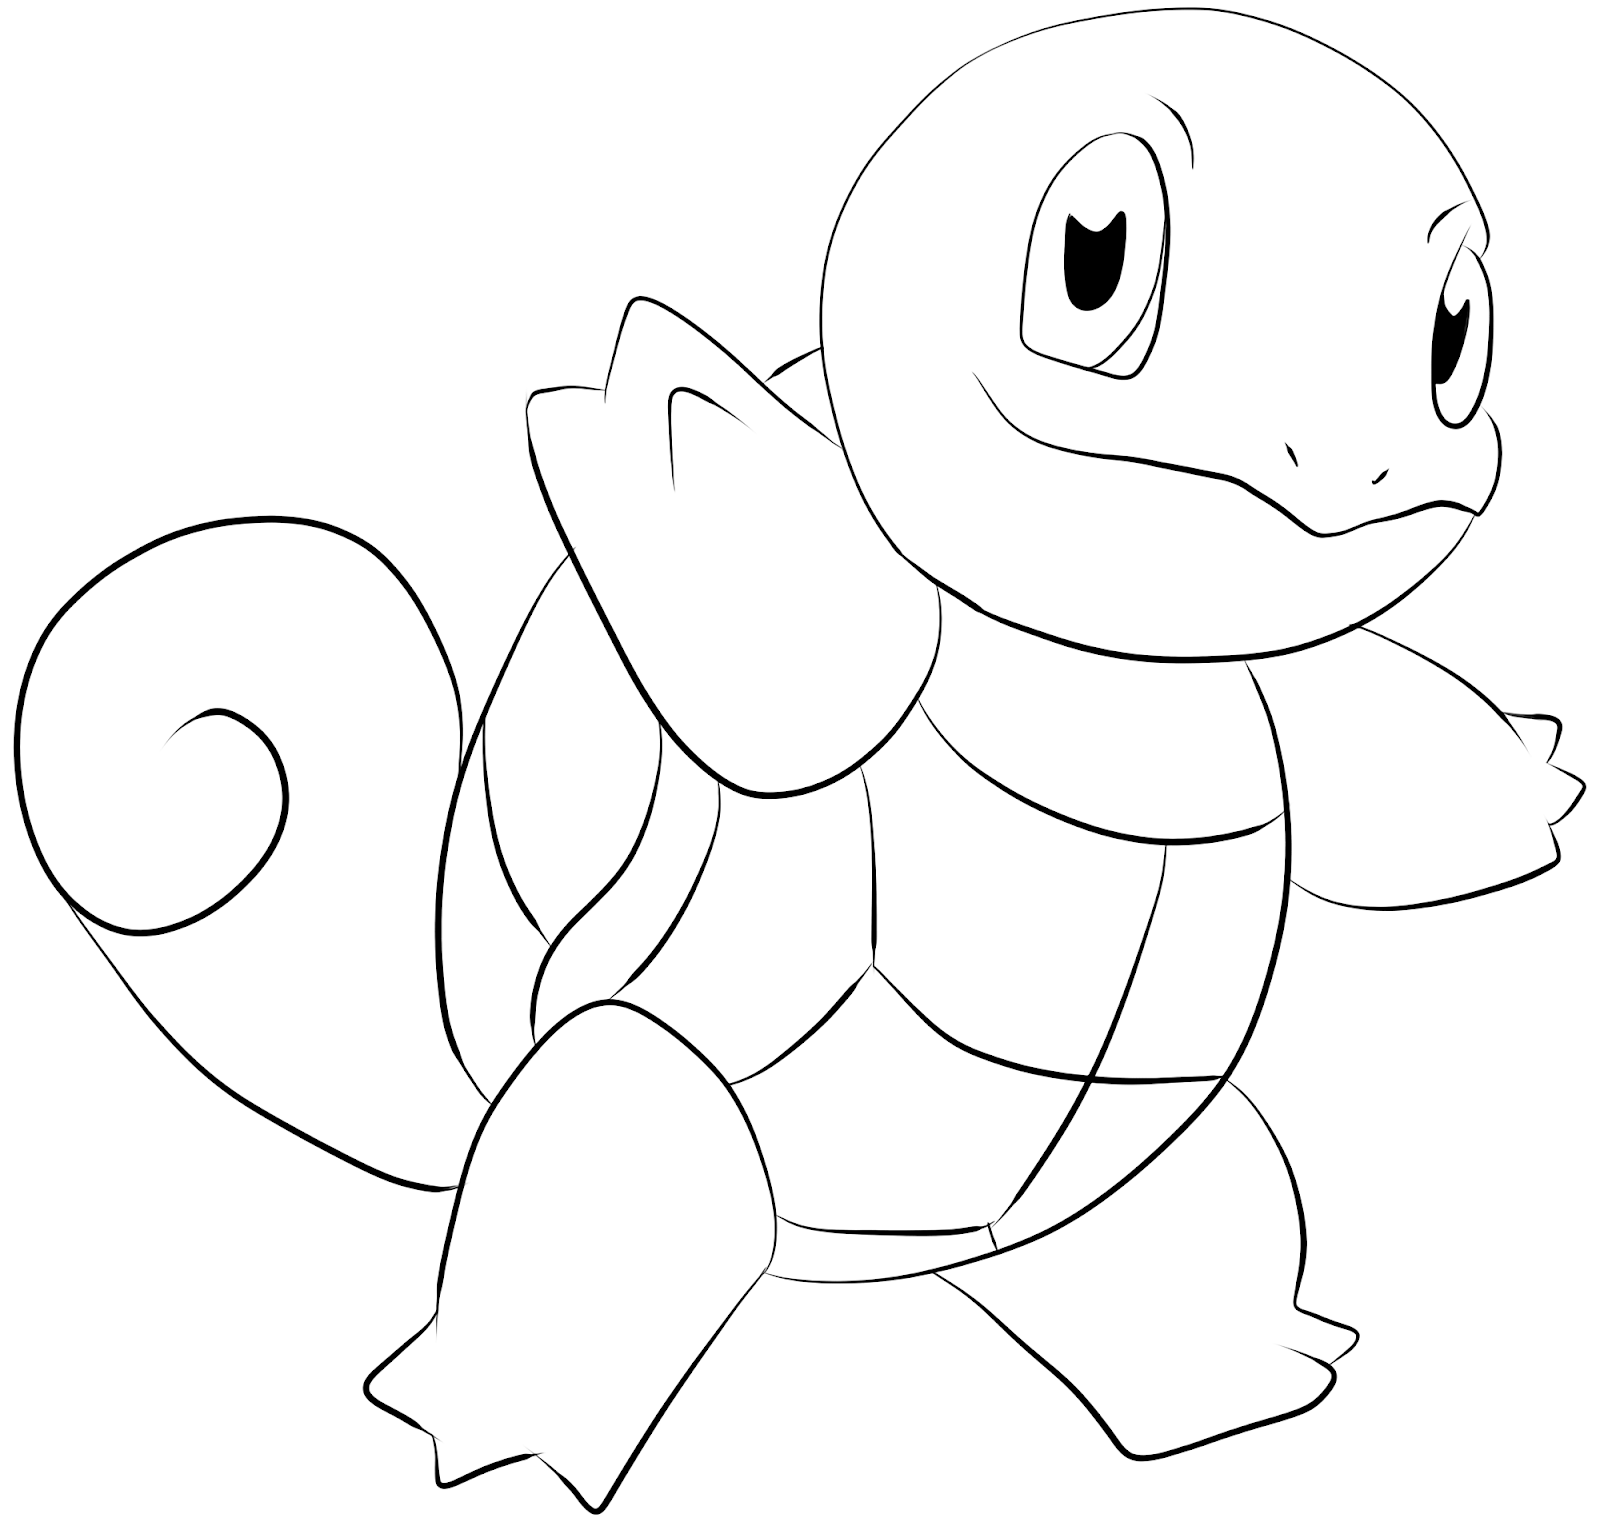 Pokemon Squirtle Coloring Sheets In 2020 Pokemon Coloring Pokemon Coloring Pages Pokemon Coloring Sheets